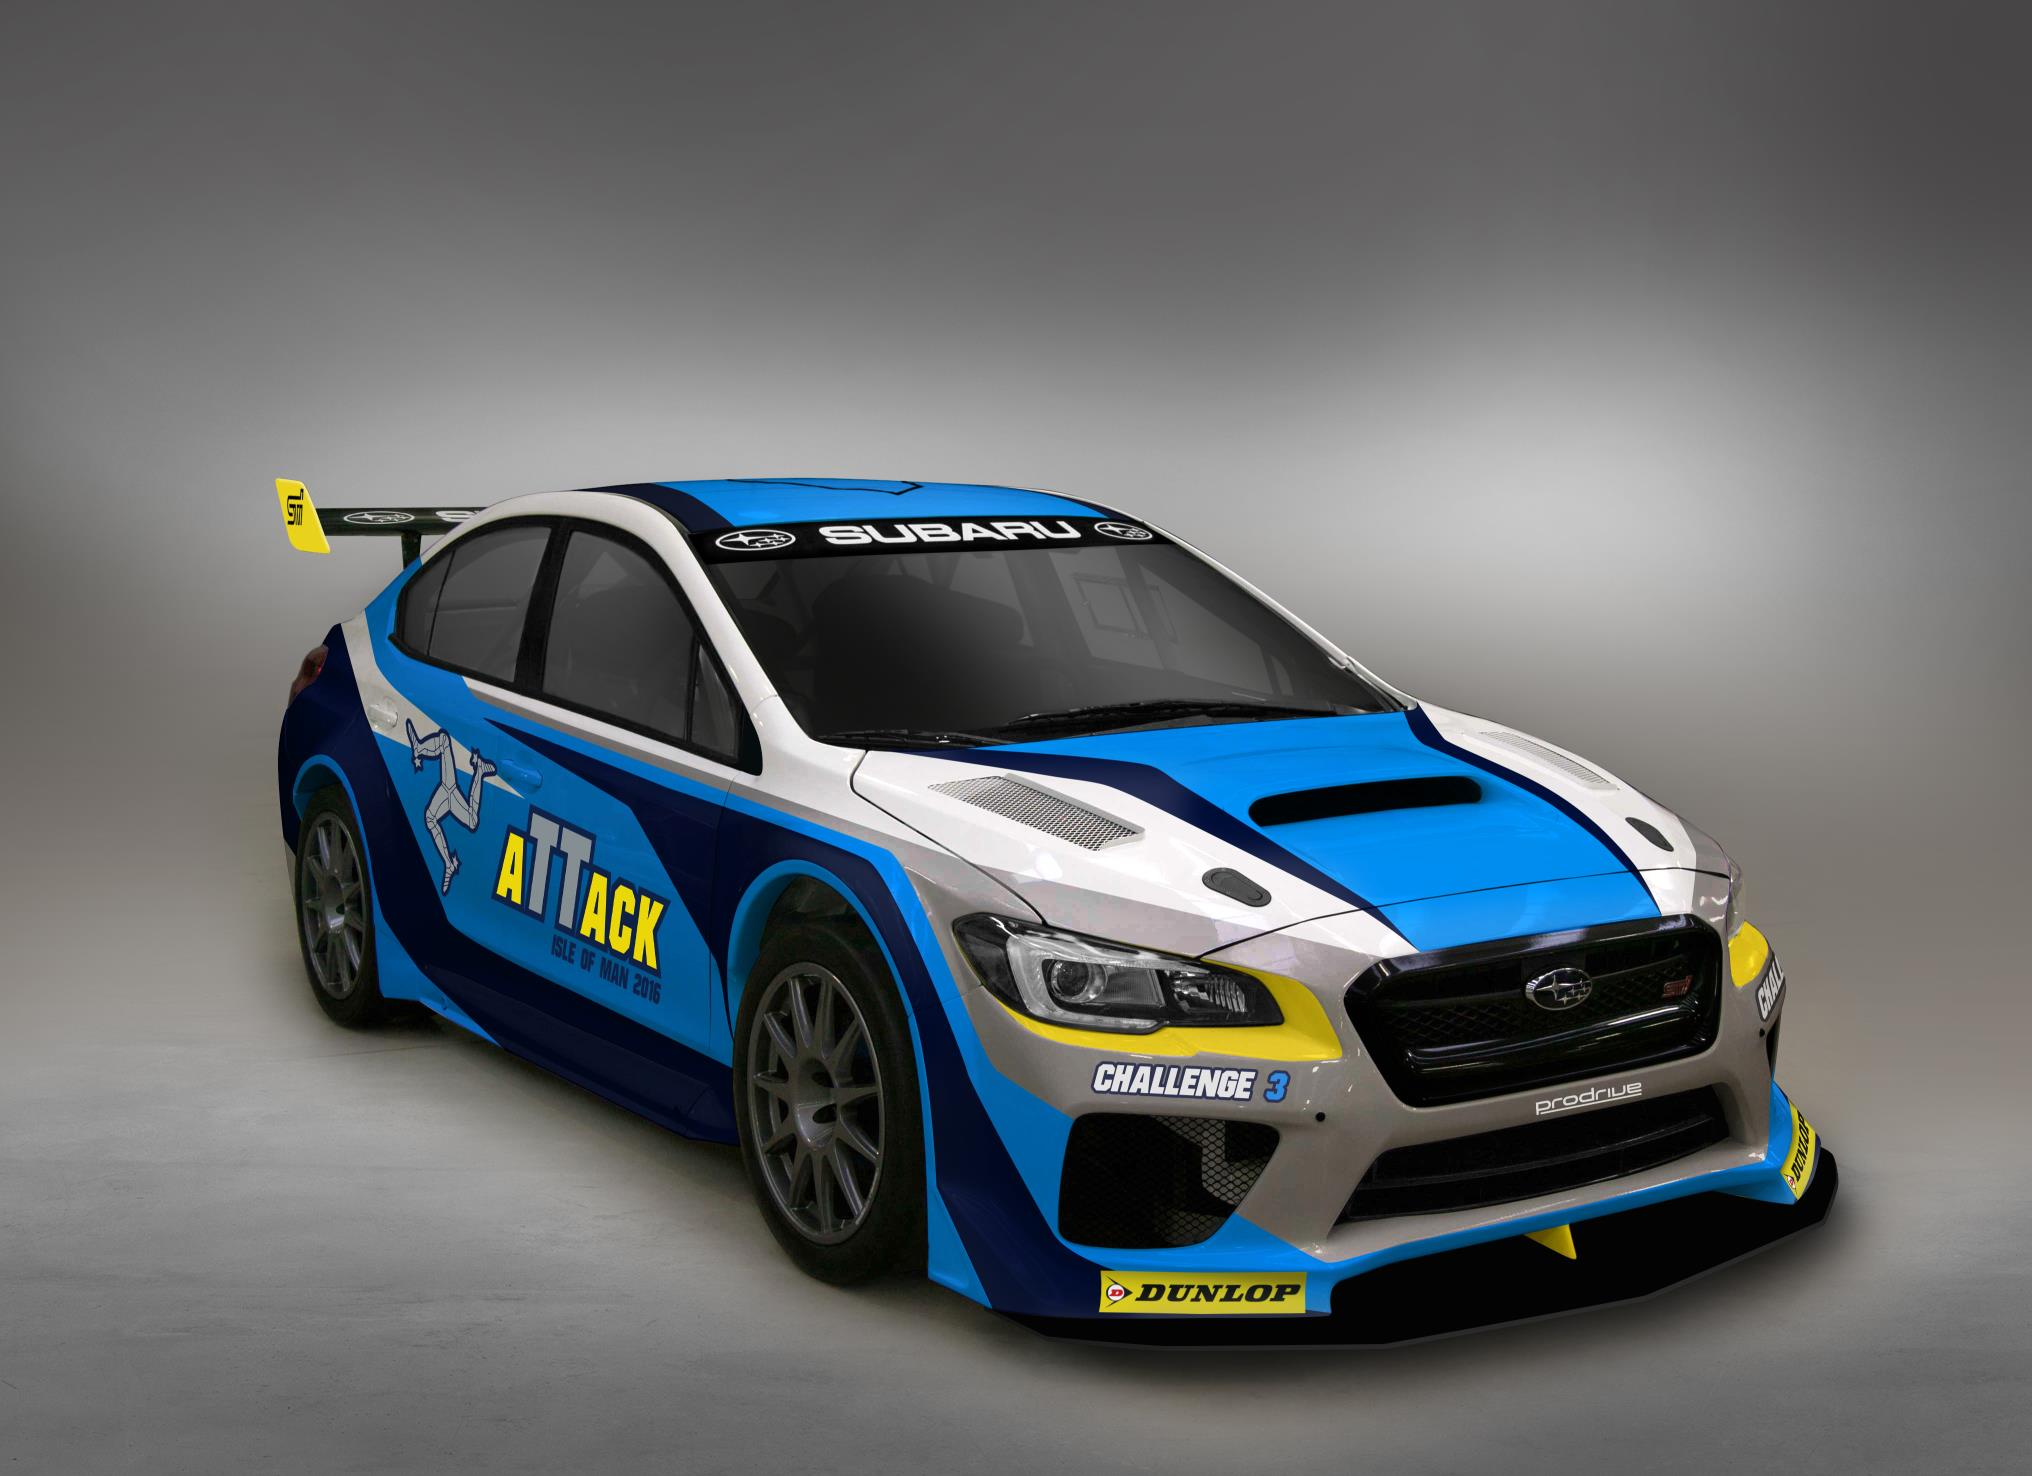 Subaru Shows Off New Isle Of Man Record Attempt Car